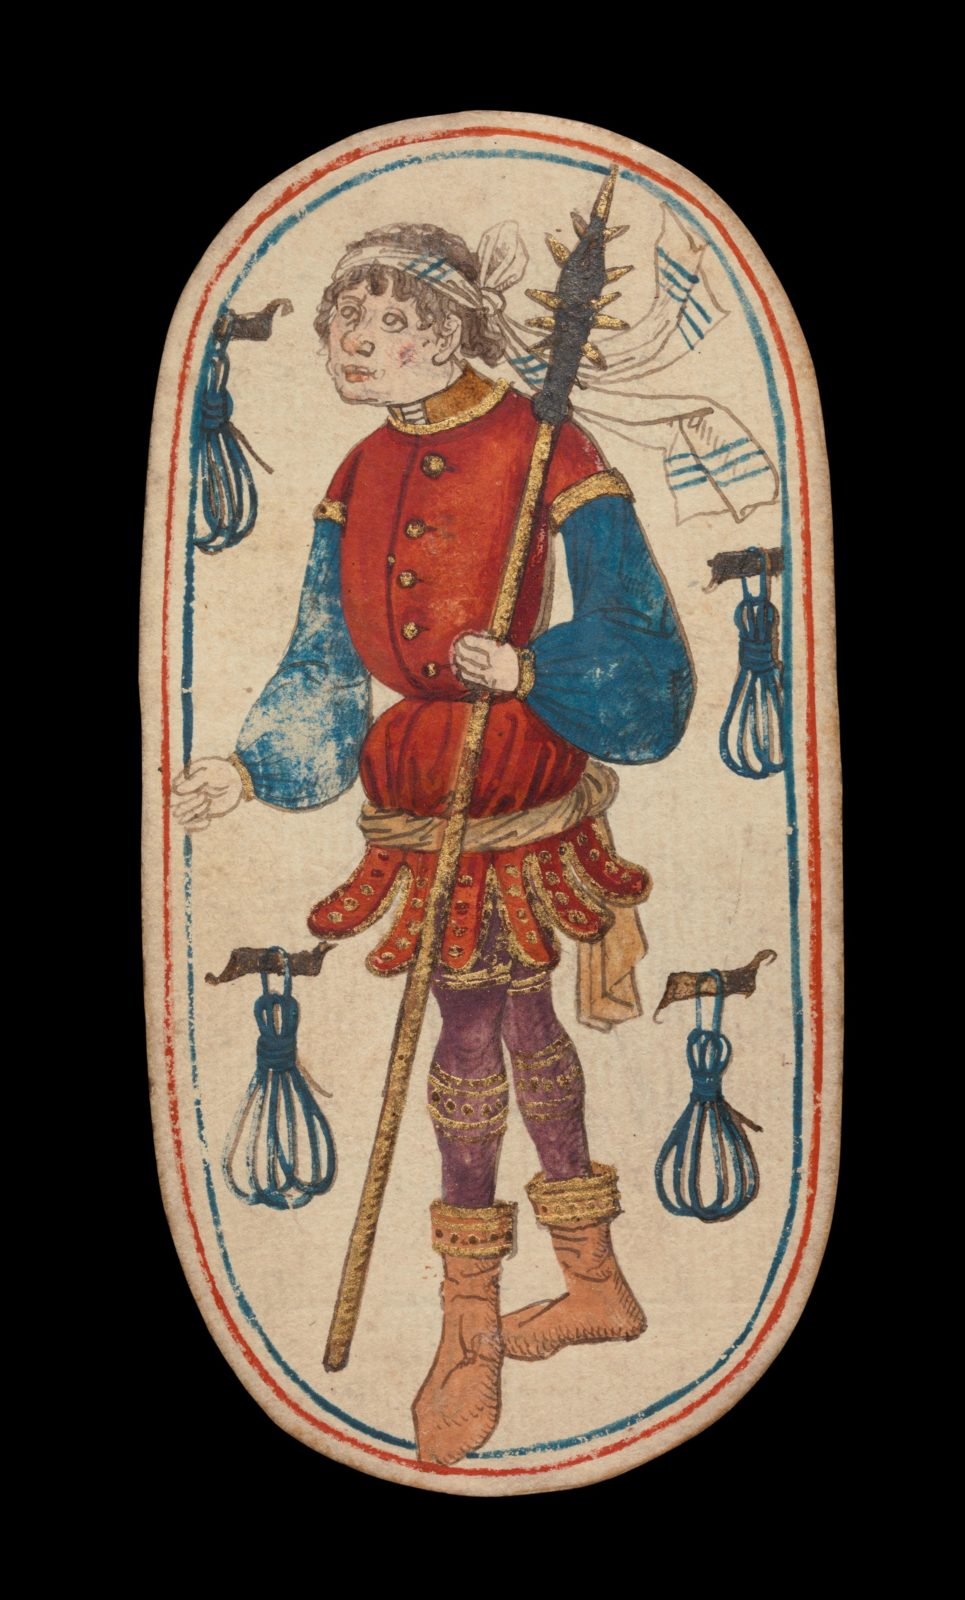 Knave of Tethers, from The Cloisters Playing Cards